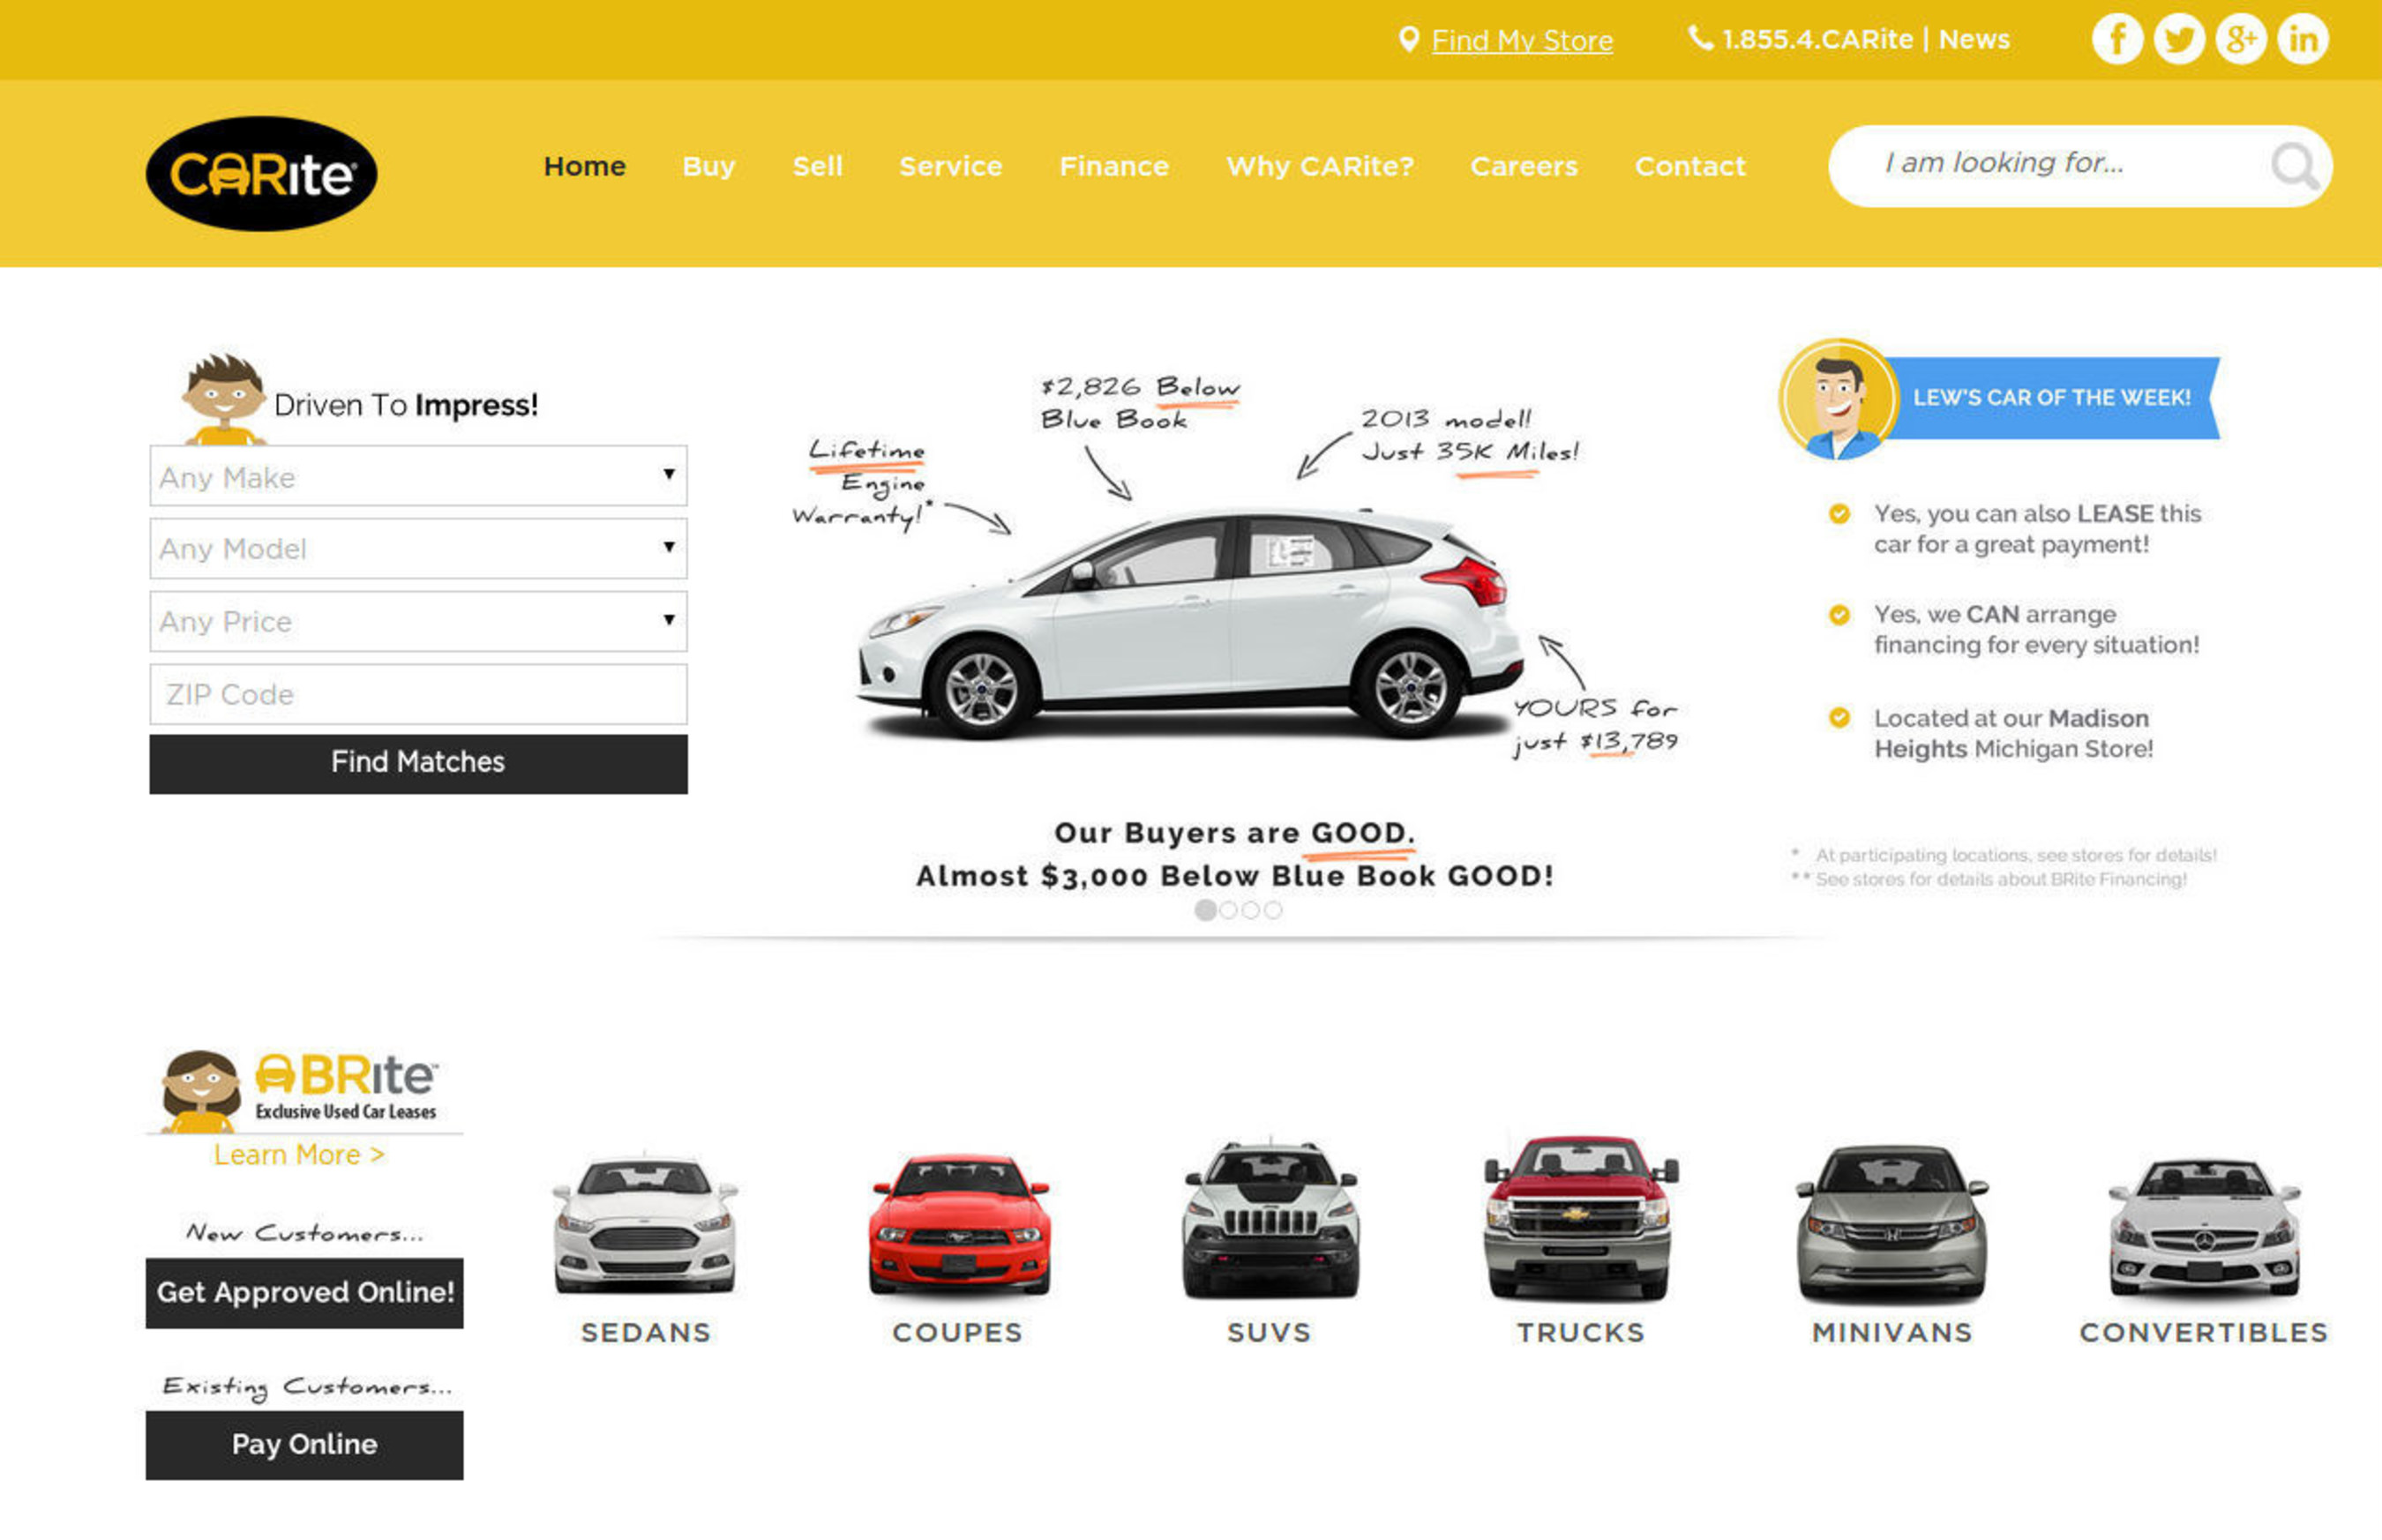 Expanding group of used car dealerships launches new website to improve online shopping experience